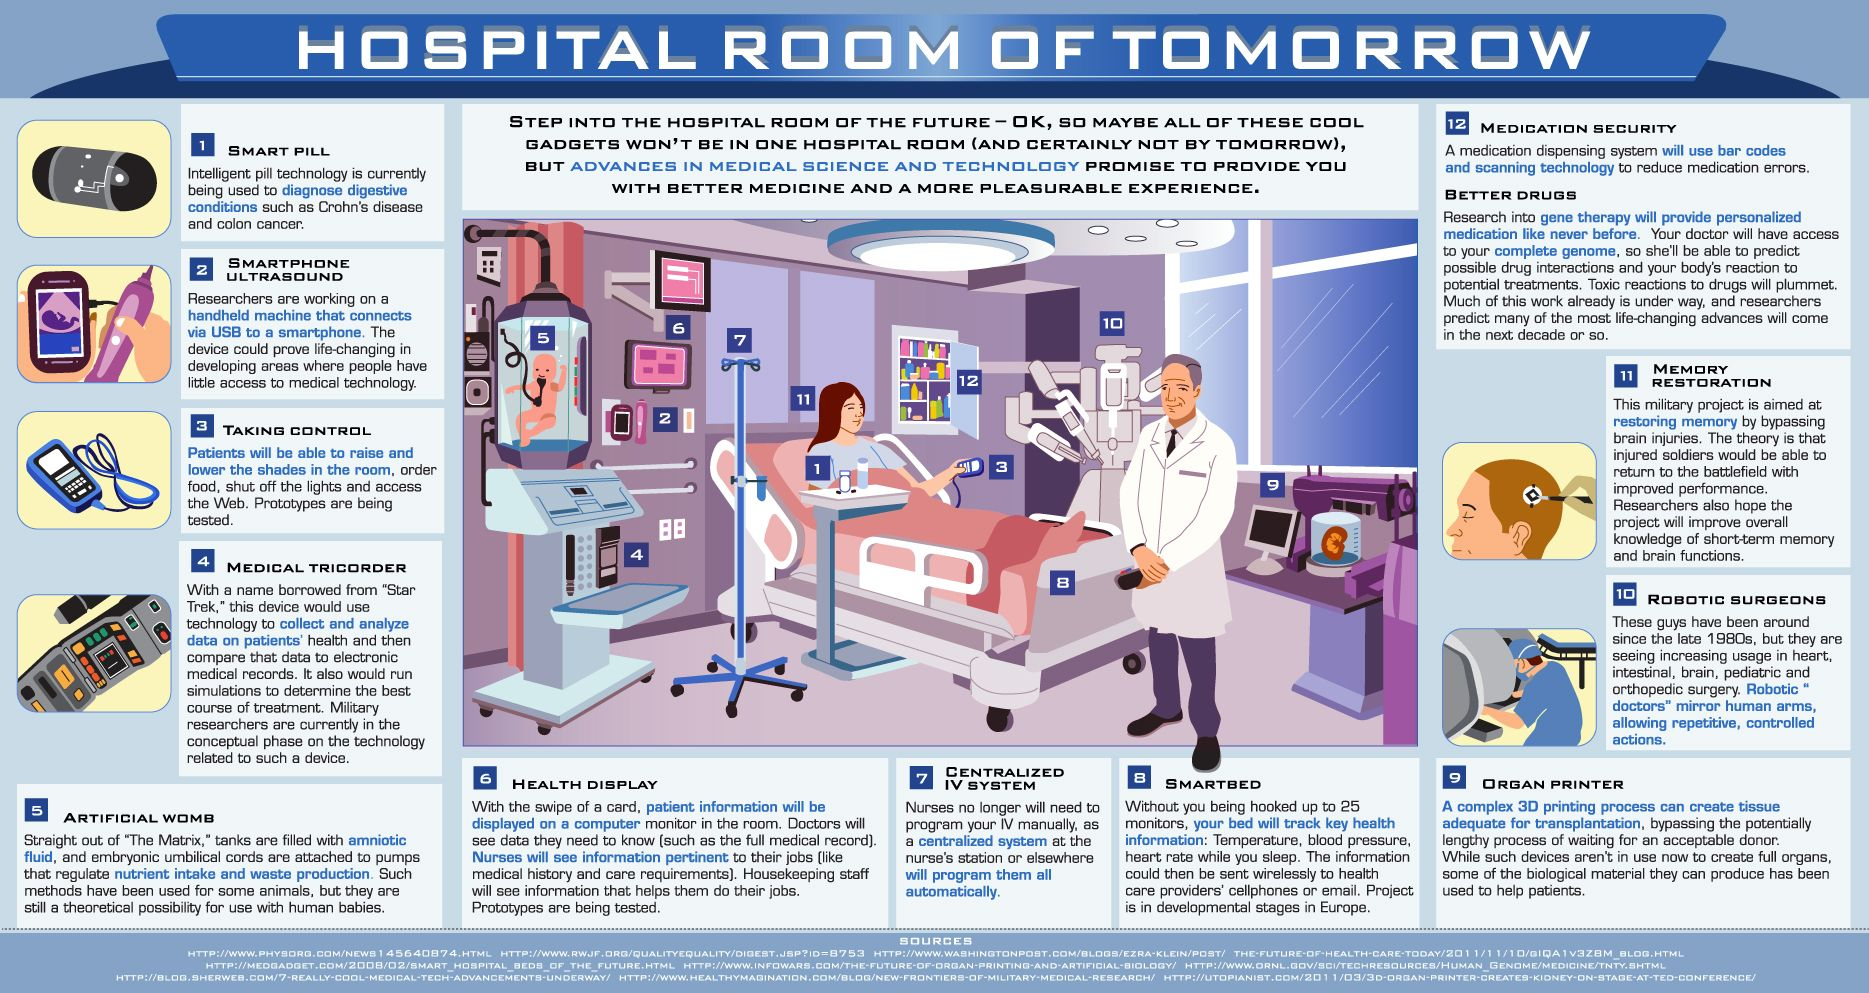 Hospital Room of the Future #innovative #hcsm #healthcare